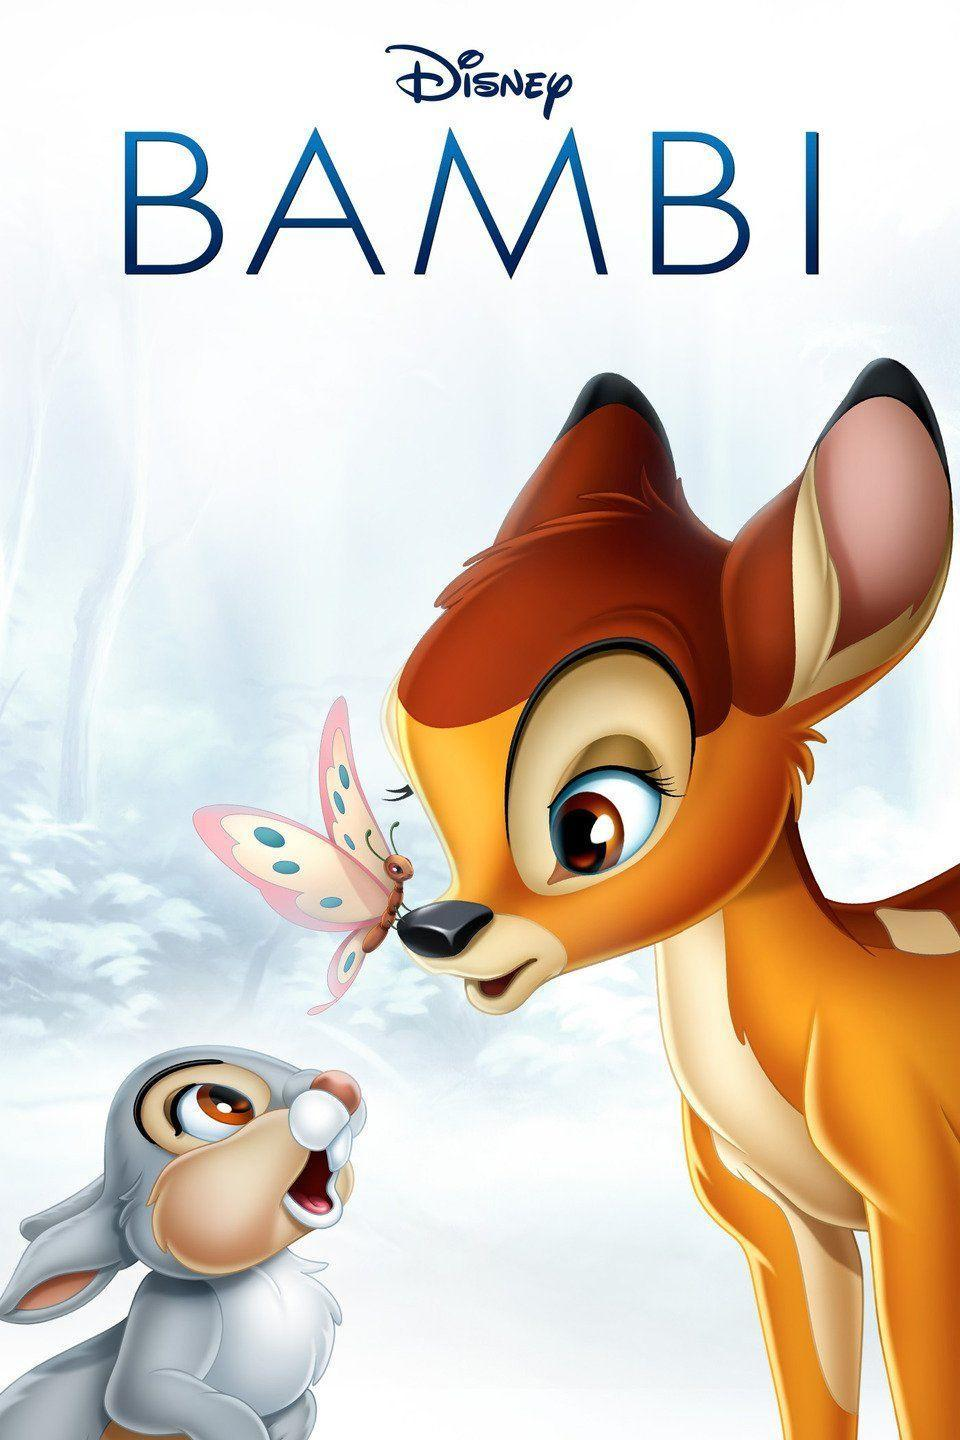 """<p><a href=""""https://variety.com/2020/film/news/bambi-disney-remake-1203479063/"""" rel=""""nofollow noopener"""" target=""""_blank"""" data-ylk=""""slk:According to"""" class=""""link rapid-noclick-resp"""">According to </a><em><a href=""""https://variety.com/2020/film/news/bambi-disney-remake-1203479063/"""" rel=""""nofollow noopener"""" target=""""_blank"""" data-ylk=""""slk:Variety"""" class=""""link rapid-noclick-resp"""">Variety</a></em>, Disney is working on a live-action-ish remake of Bambi. It will use the same kind of CGI realness that <em>The Lion King</em> got for its remake back in 2019. </p><p><a class=""""link rapid-noclick-resp"""" href=""""https://www.amazon.com/Bambi-Theatrical-Version-Bobbie-Stewart/dp/B072L4799K/ref=sr_1_2?dchild=1&keywords=bambi&qid=1584723933&sr=8-2&tag=syn-yahoo-20&ascsubtag=%5Bartid%7C10065.g.2936%5Bsrc%7Cyahoo-us"""" rel=""""nofollow noopener"""" target=""""_blank"""" data-ylk=""""slk:Watch the Original"""">Watch the Original</a></p>"""